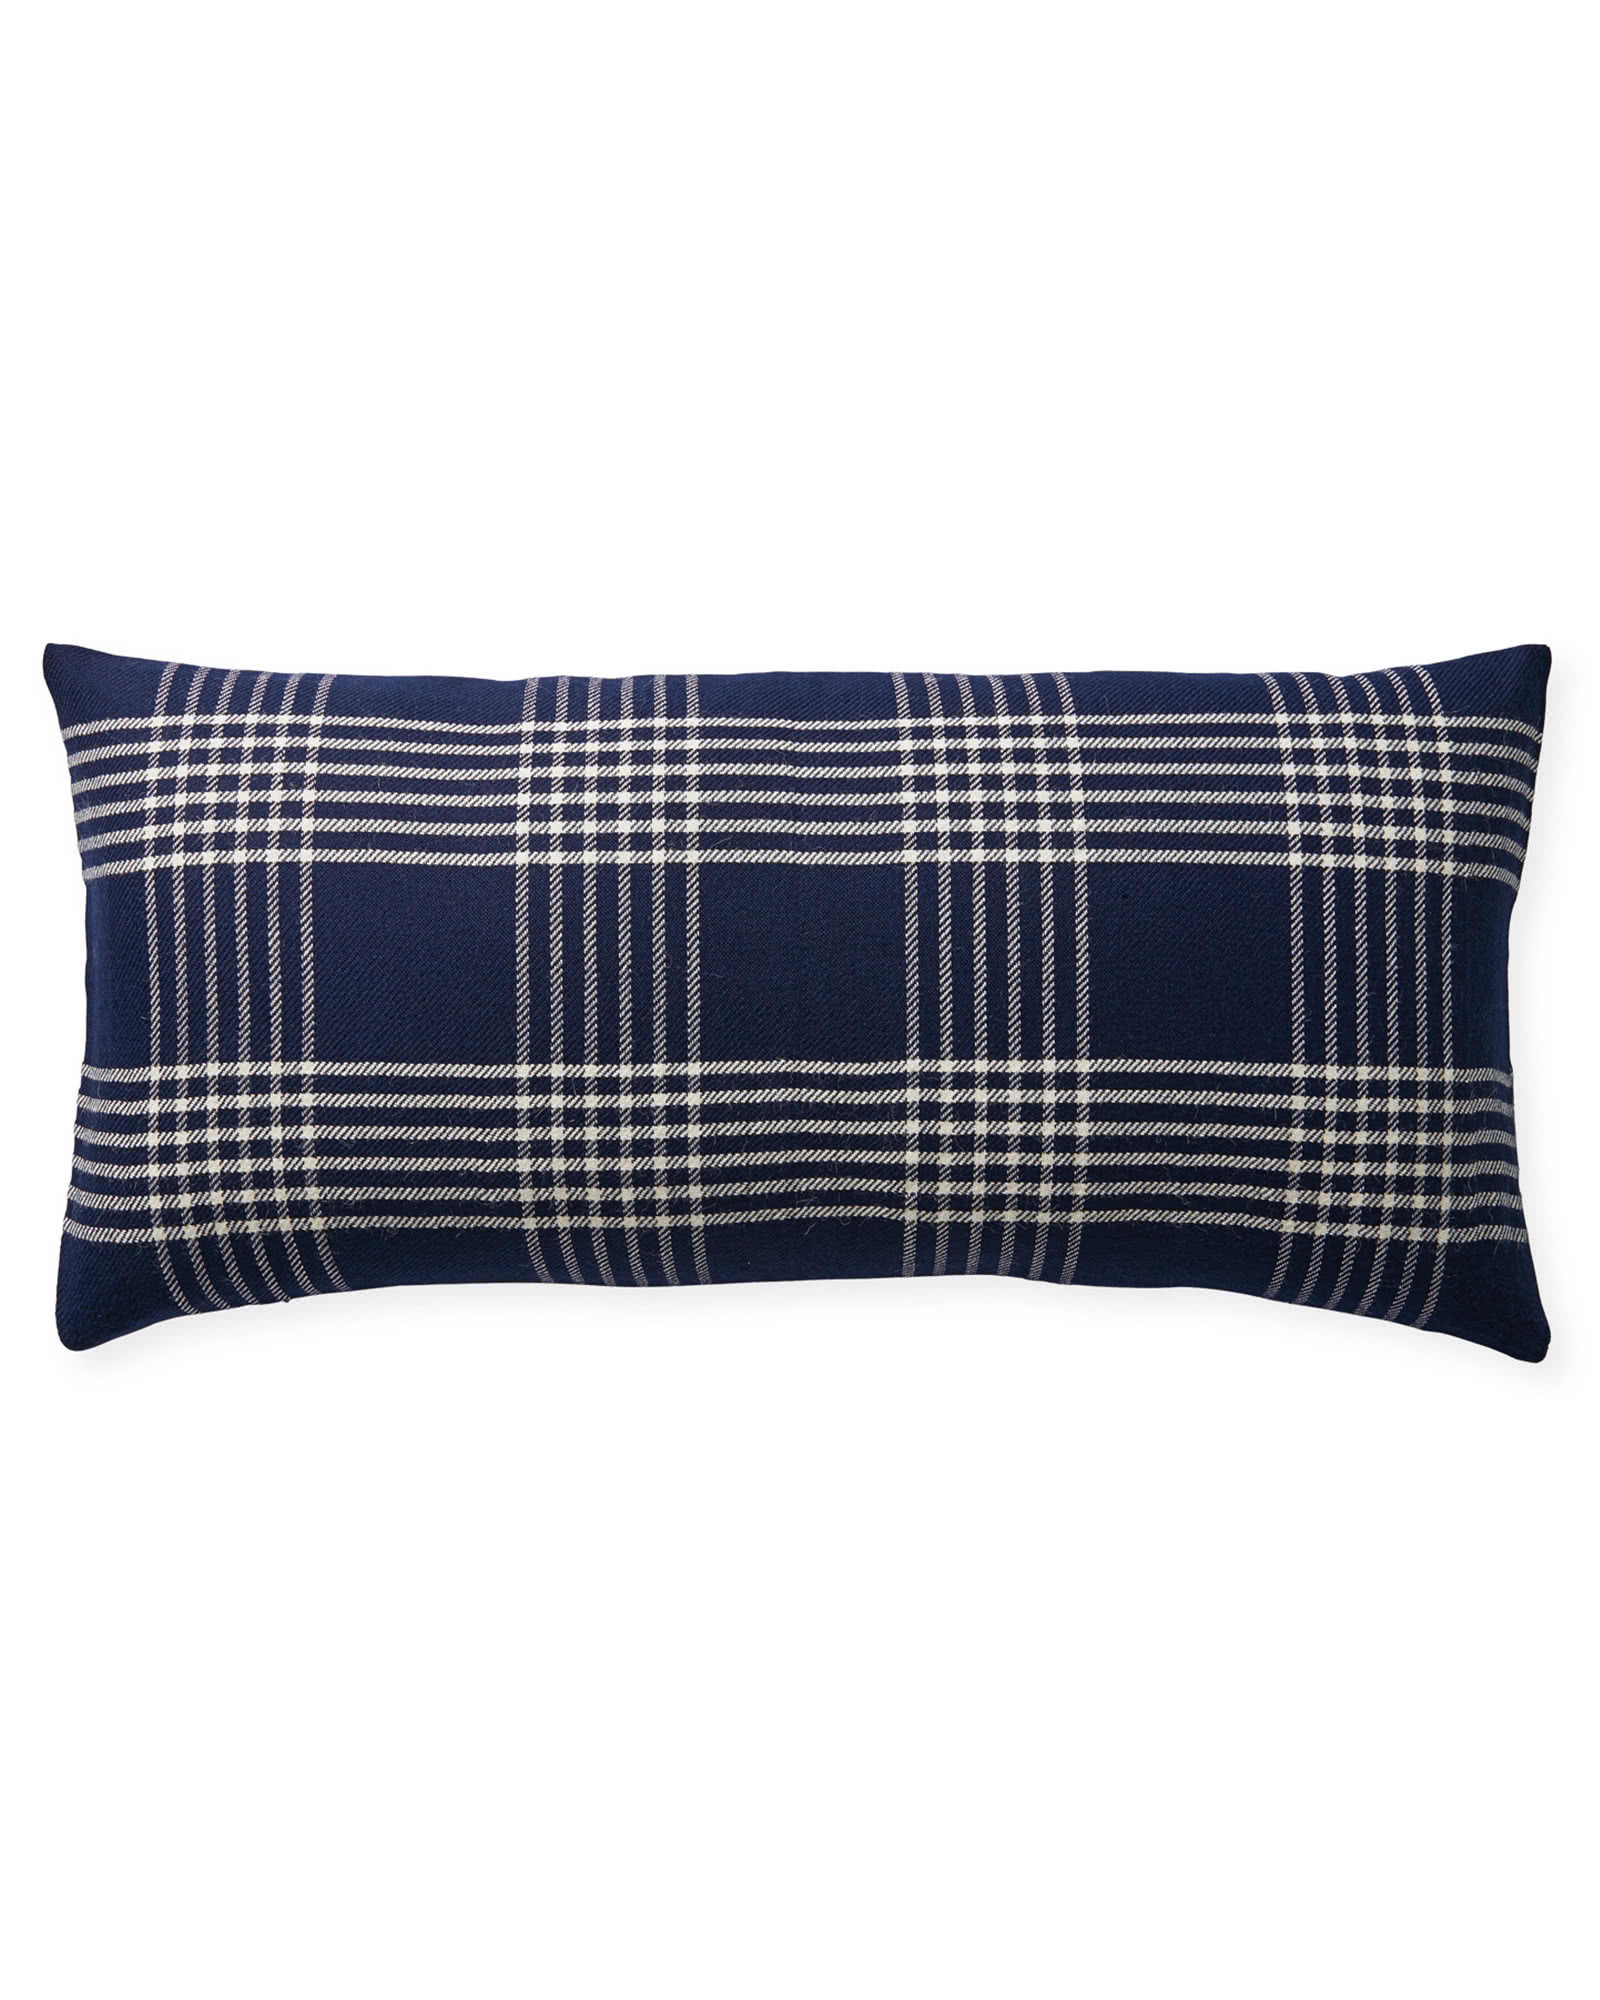 Blakely Plaid Pillow Cover, Midnight/Ivory